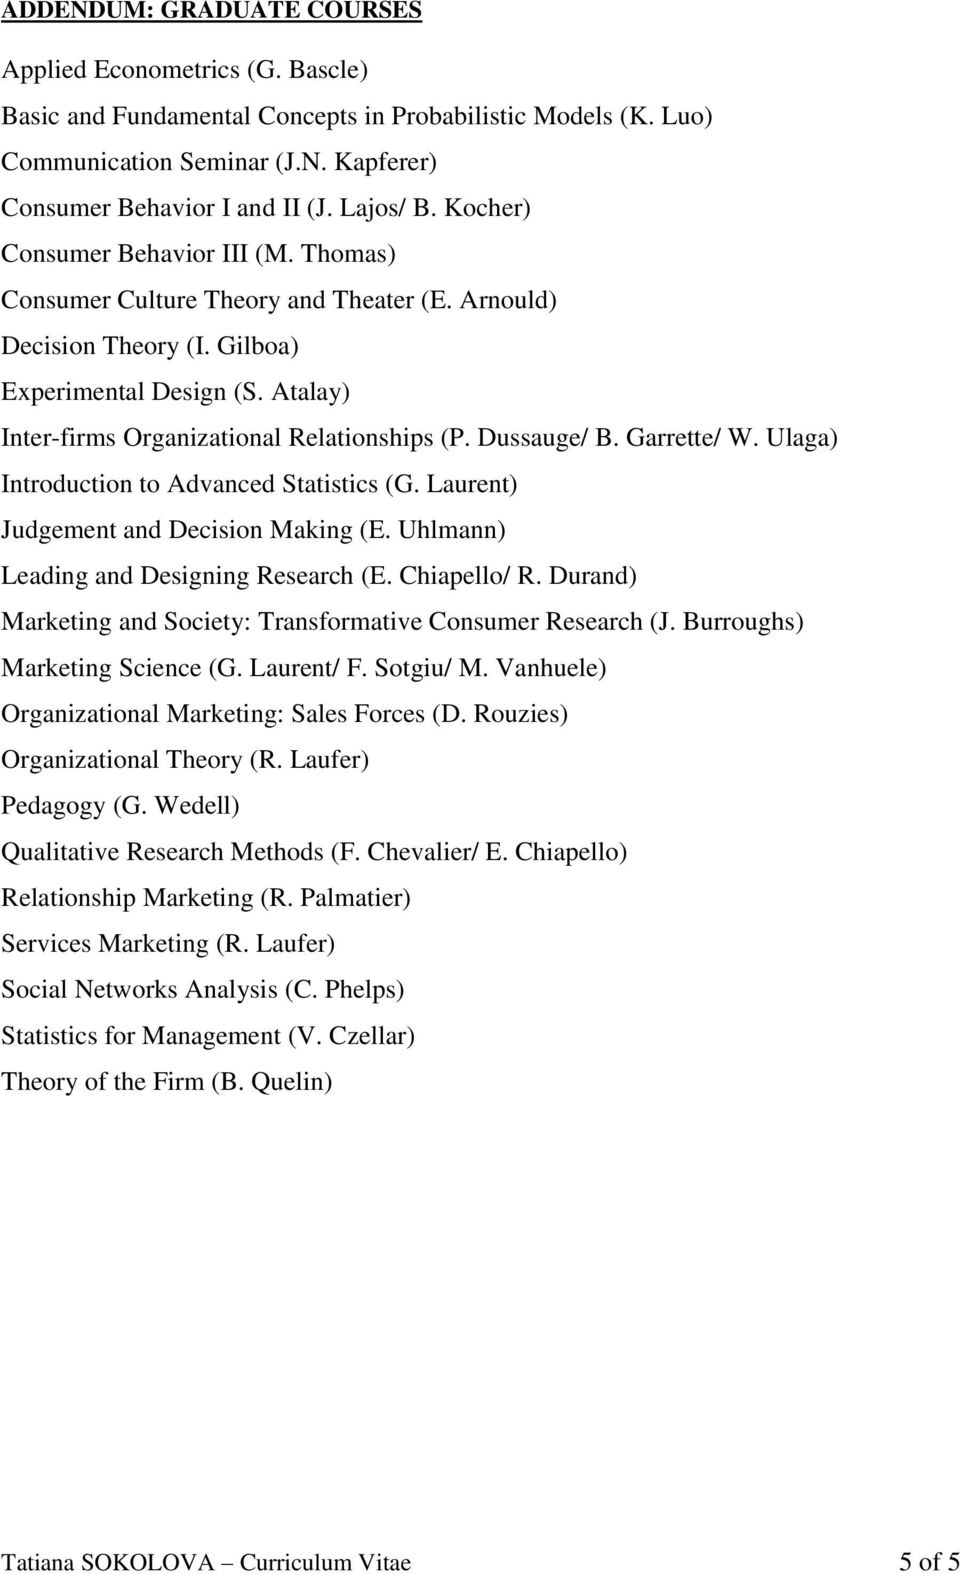 Atalay) Inter-firms Organizational Relationships (P. Dussauge/ B. Garrette/ W. Ulaga) Introduction to Advanced Statistics (G. Laurent) Judgement and Decision Making (E.